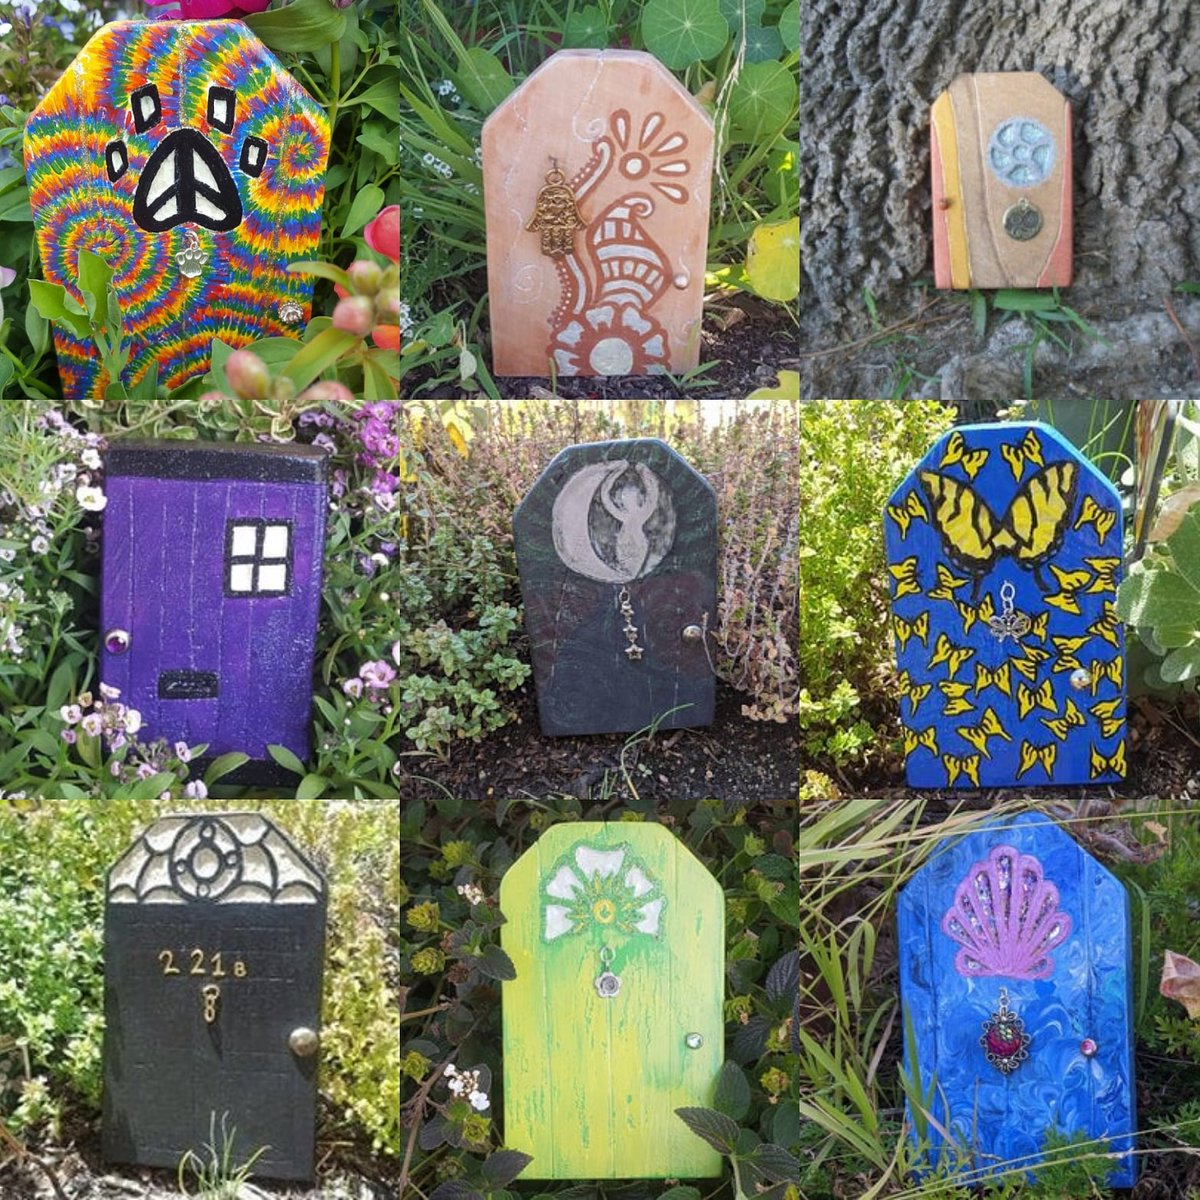 Which door would you choose?   Just some of the #fairydoors you'll find in my #etsyshop: https://t.co/r4a1fDOSFy  #fairycore #GardensHour #GardenersWorld #witchtwt #gardenlife #cottagecore #craftbizparty #handmadehour #inbizhour #womeninbizhour #fairy https://t.co/z5Sfzdg1wD